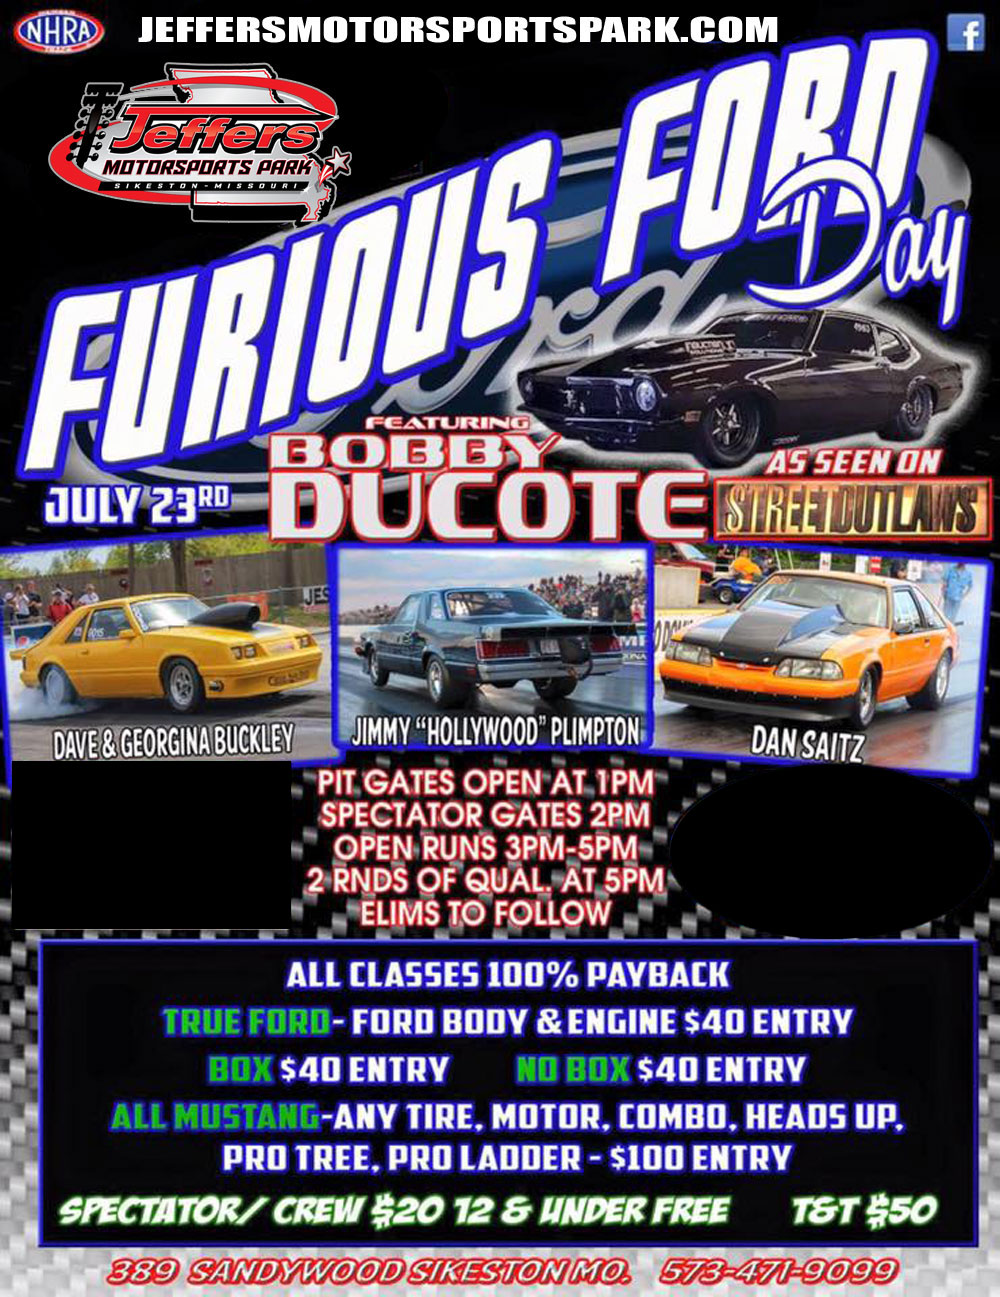 furious-ford-day-jmp-1